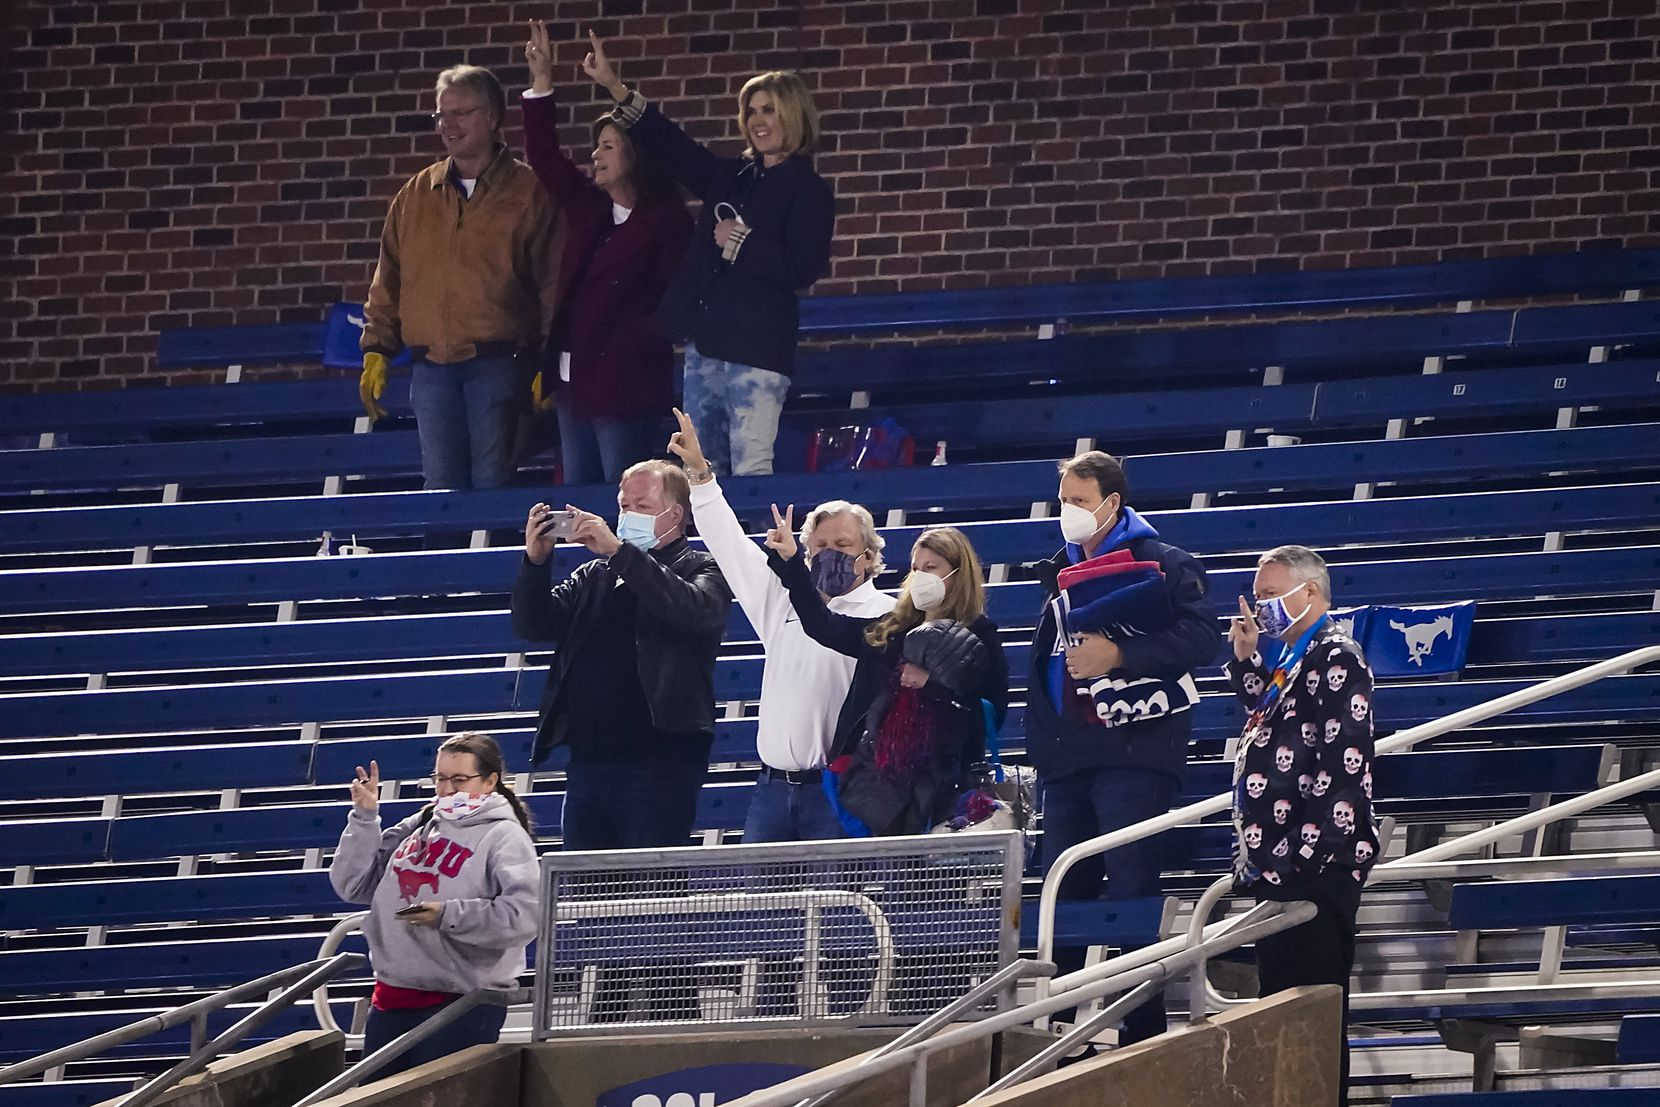 SMU fan Paul Layne (center. in white shirt) stands for the playing of the school's alma mater following a game against Navy at Ford Stadium on Saturday, Oct. 31, 2020, in Dallas.